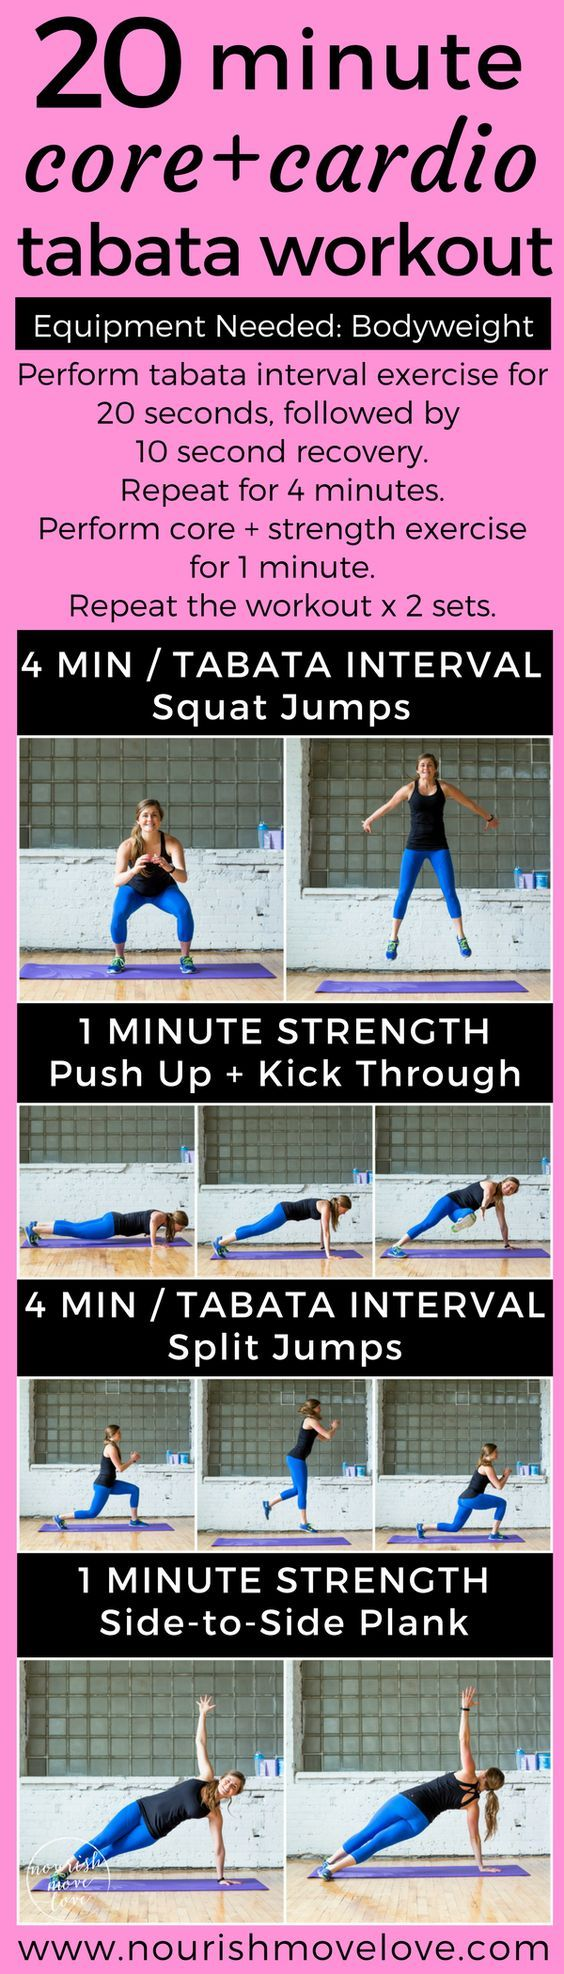 20Minute Bodyweight Tabata Workout Tabata workouts